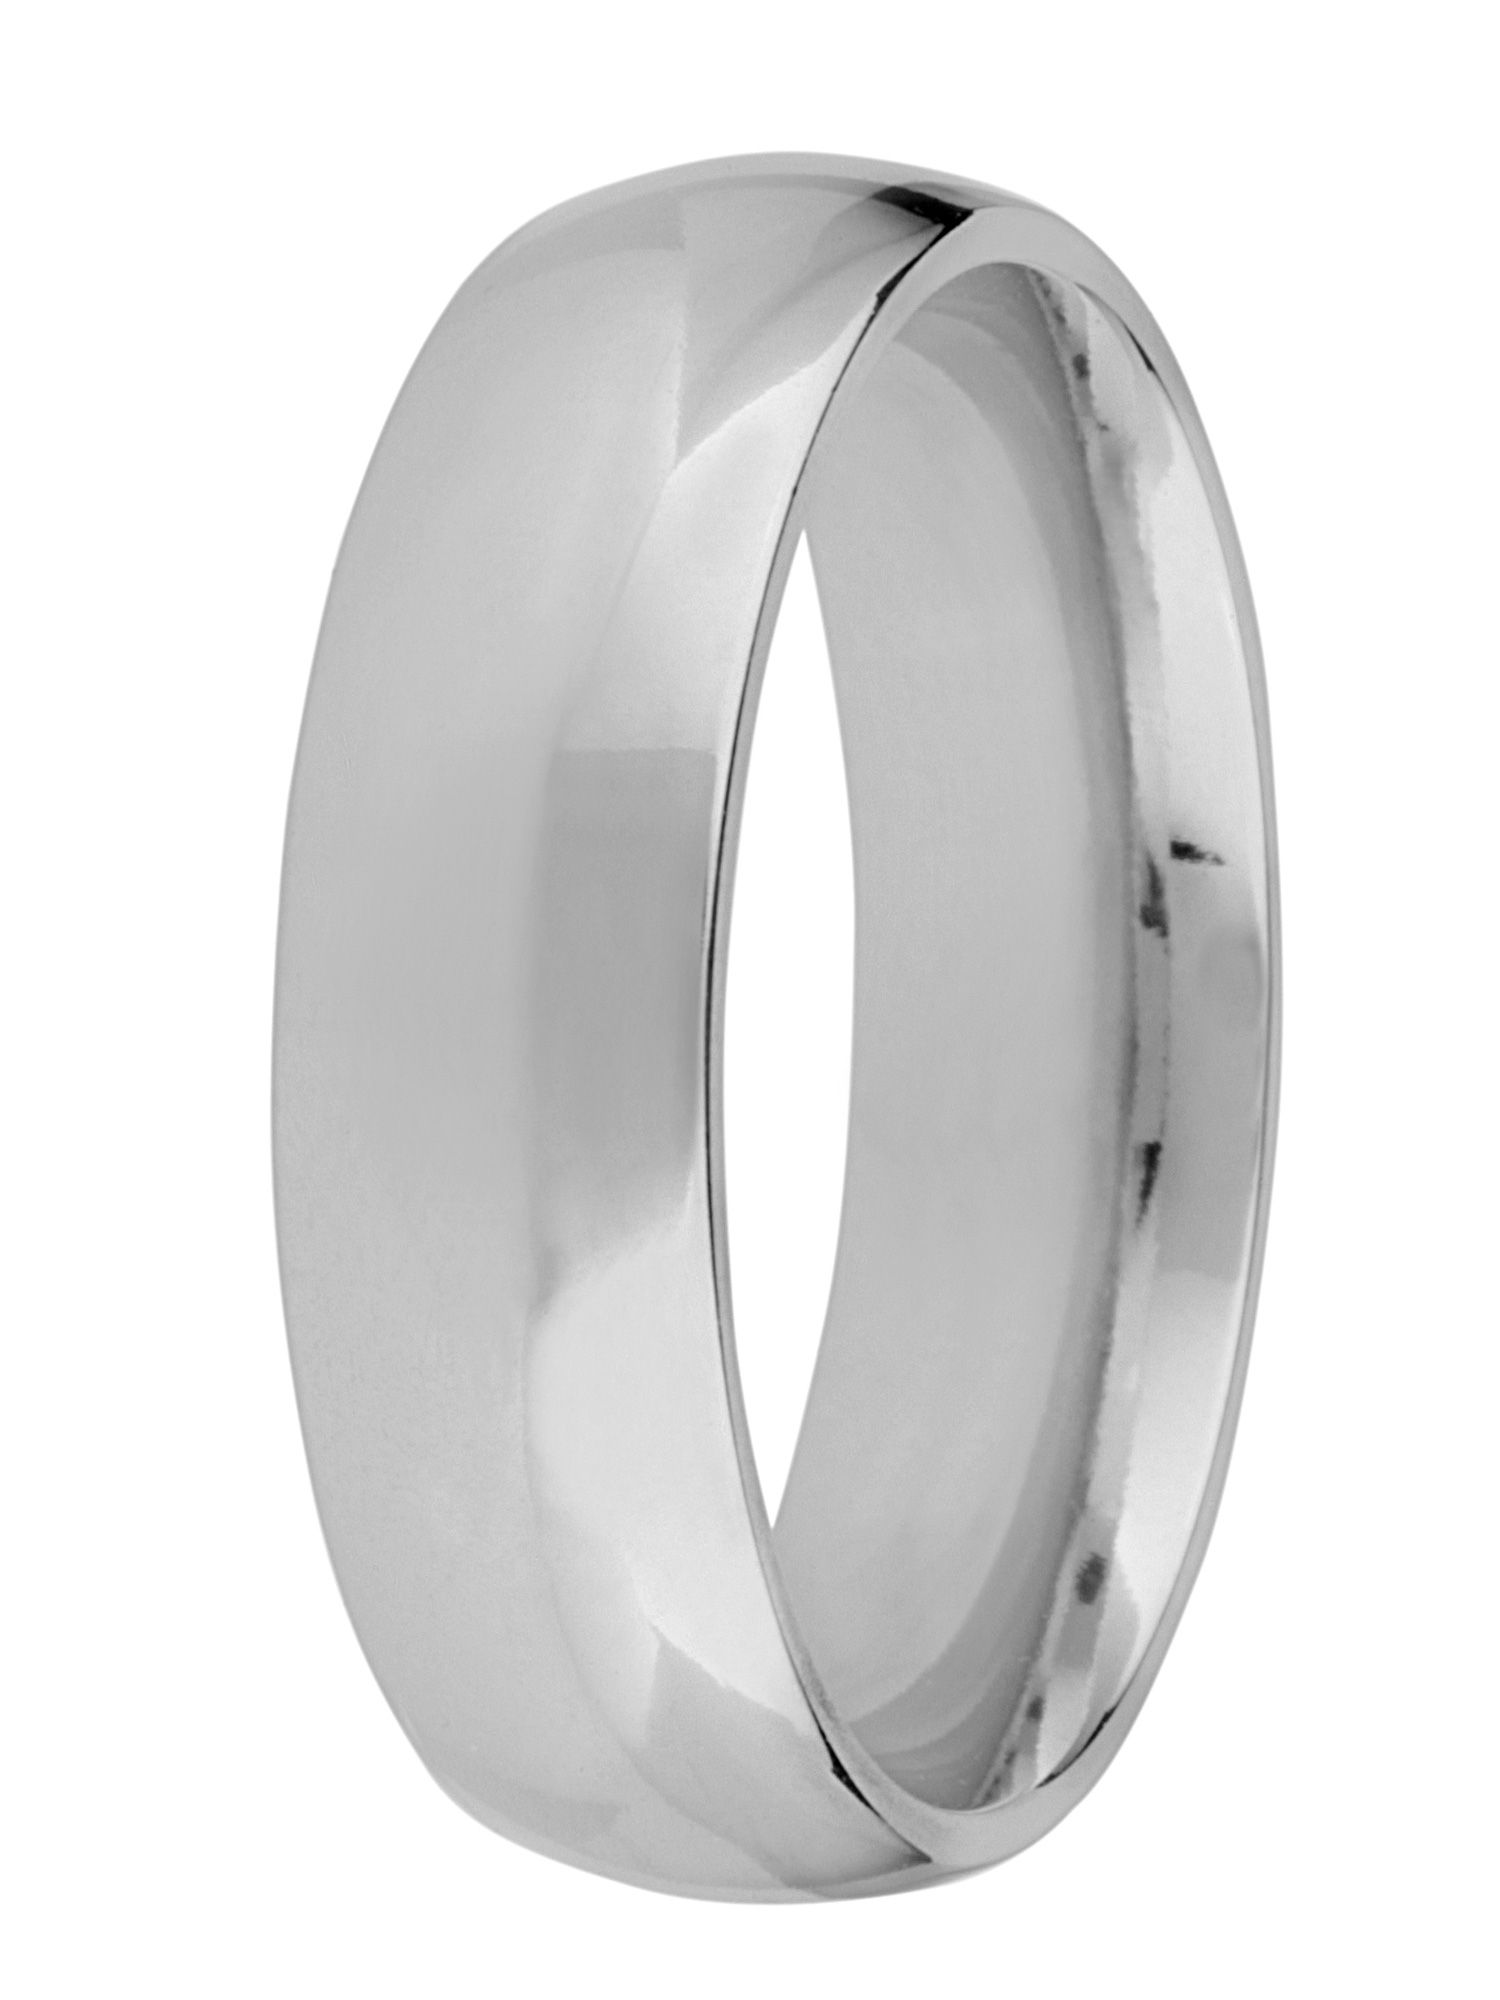 Grooms palladium heavy court 6mm wedding ring - Silver